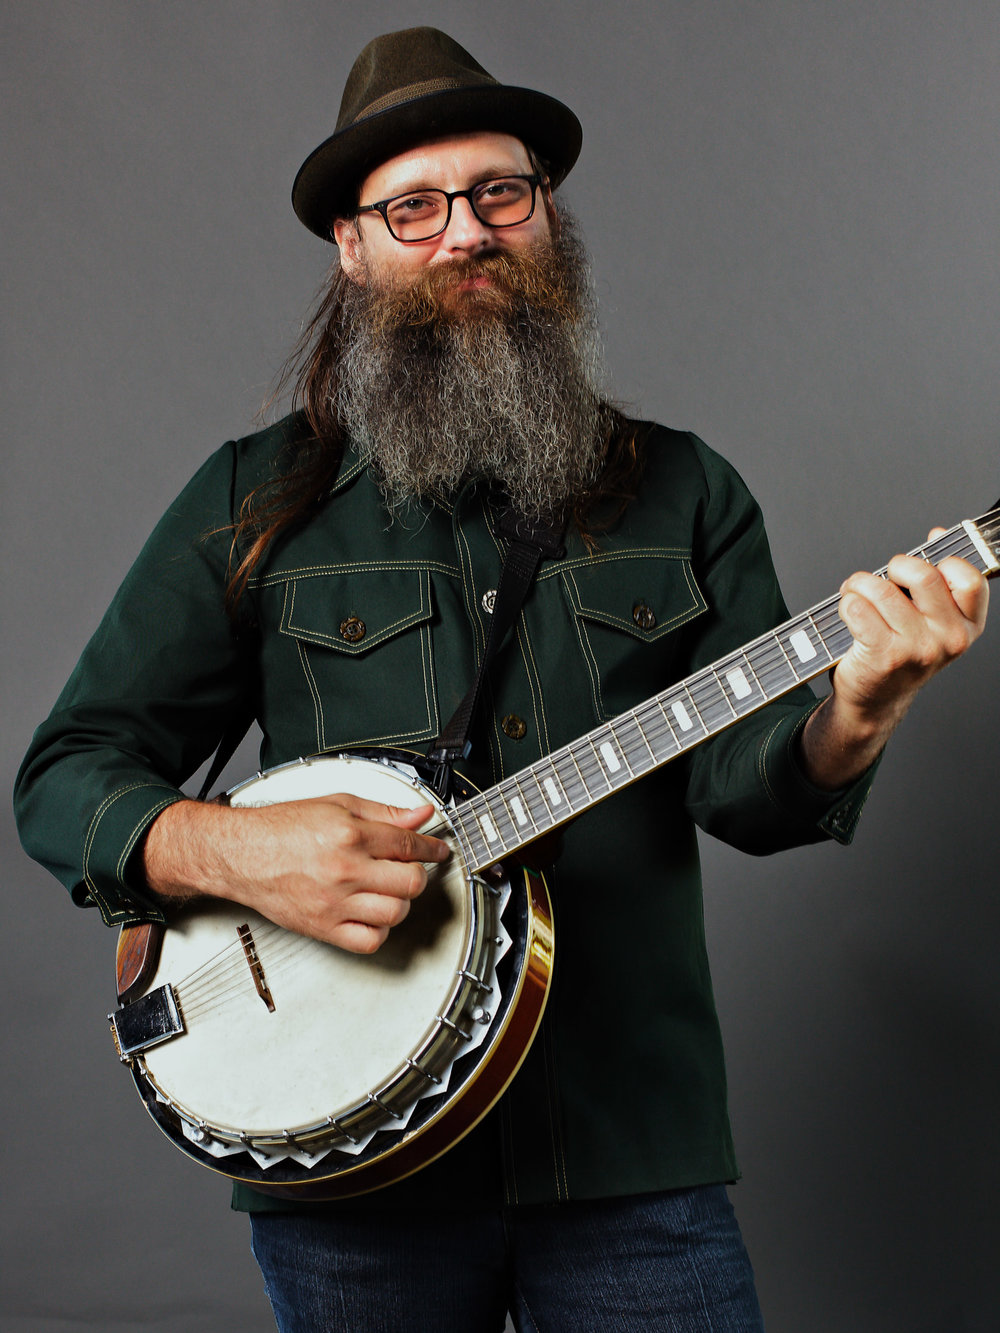 carver with Banjo portrait.jpg